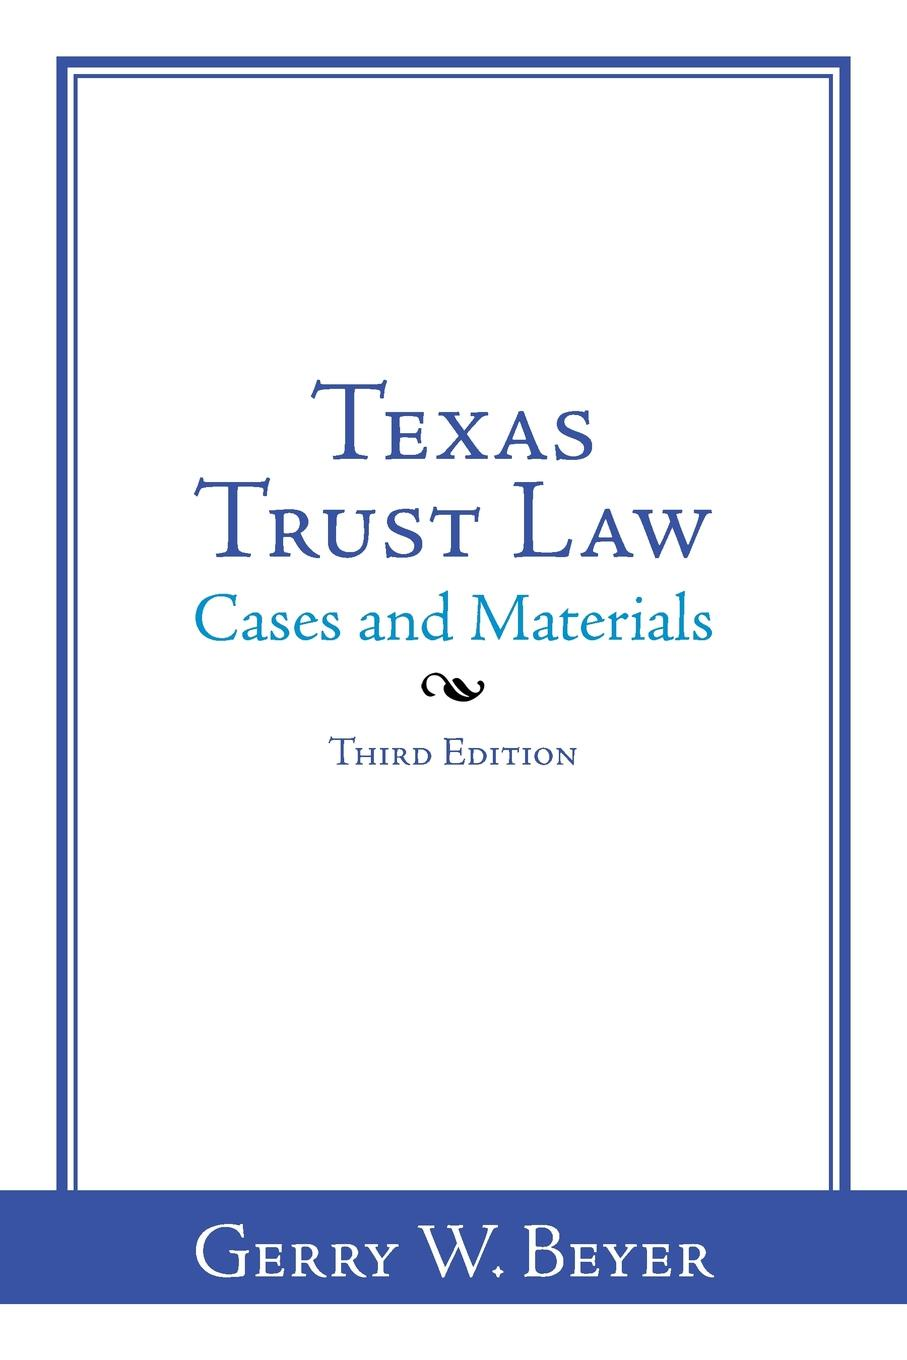 Gerry W. Beyer Texas Trust Law. Cases and Materials-Third Edition jordan d lewis trusted partners how companies build mutual trust and win together